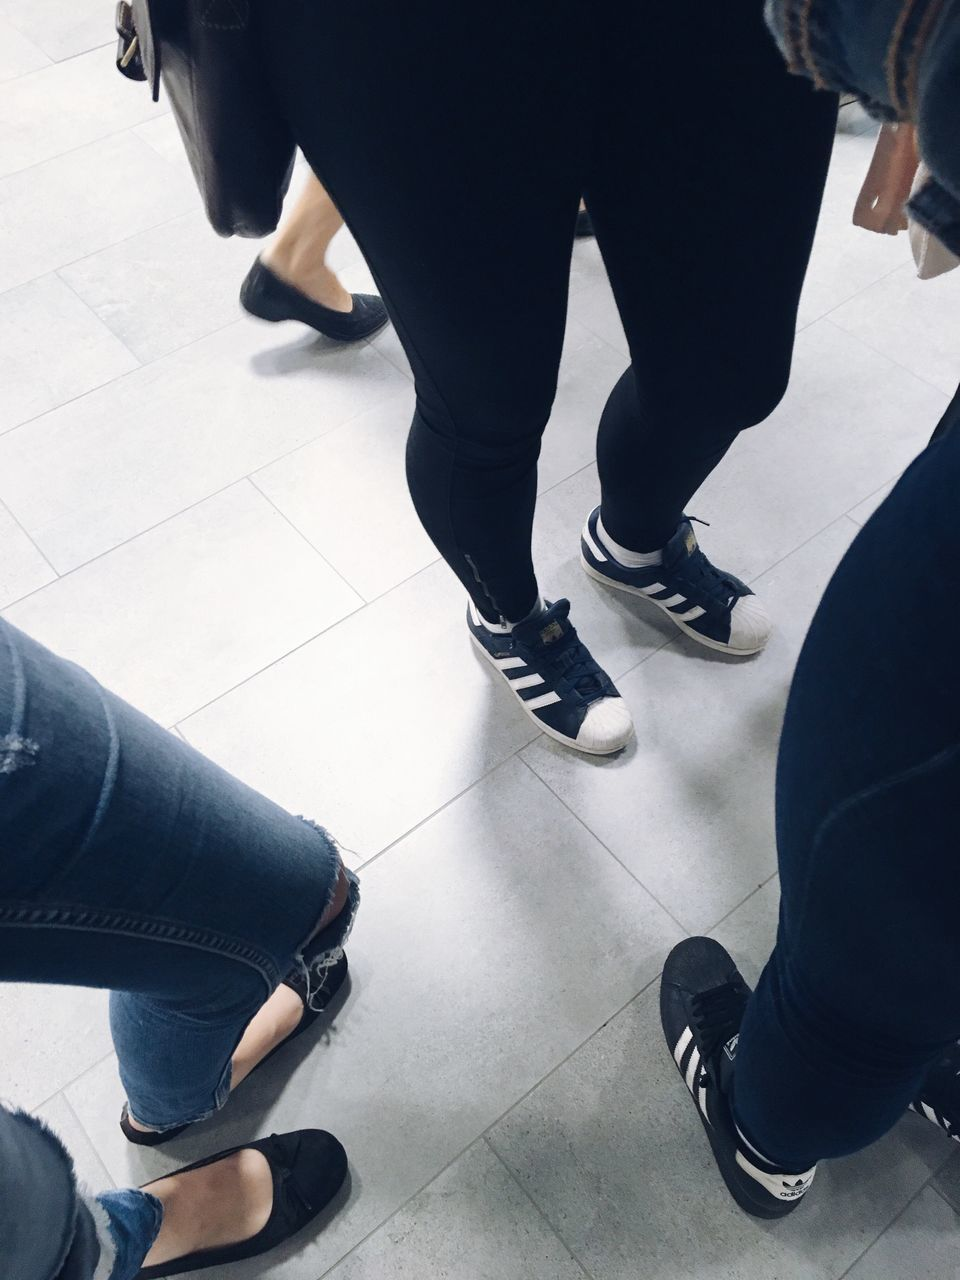 low section, high angle view, human leg, indoors, shoe, real people, standing, women, men, two people, technology, day, adult, people